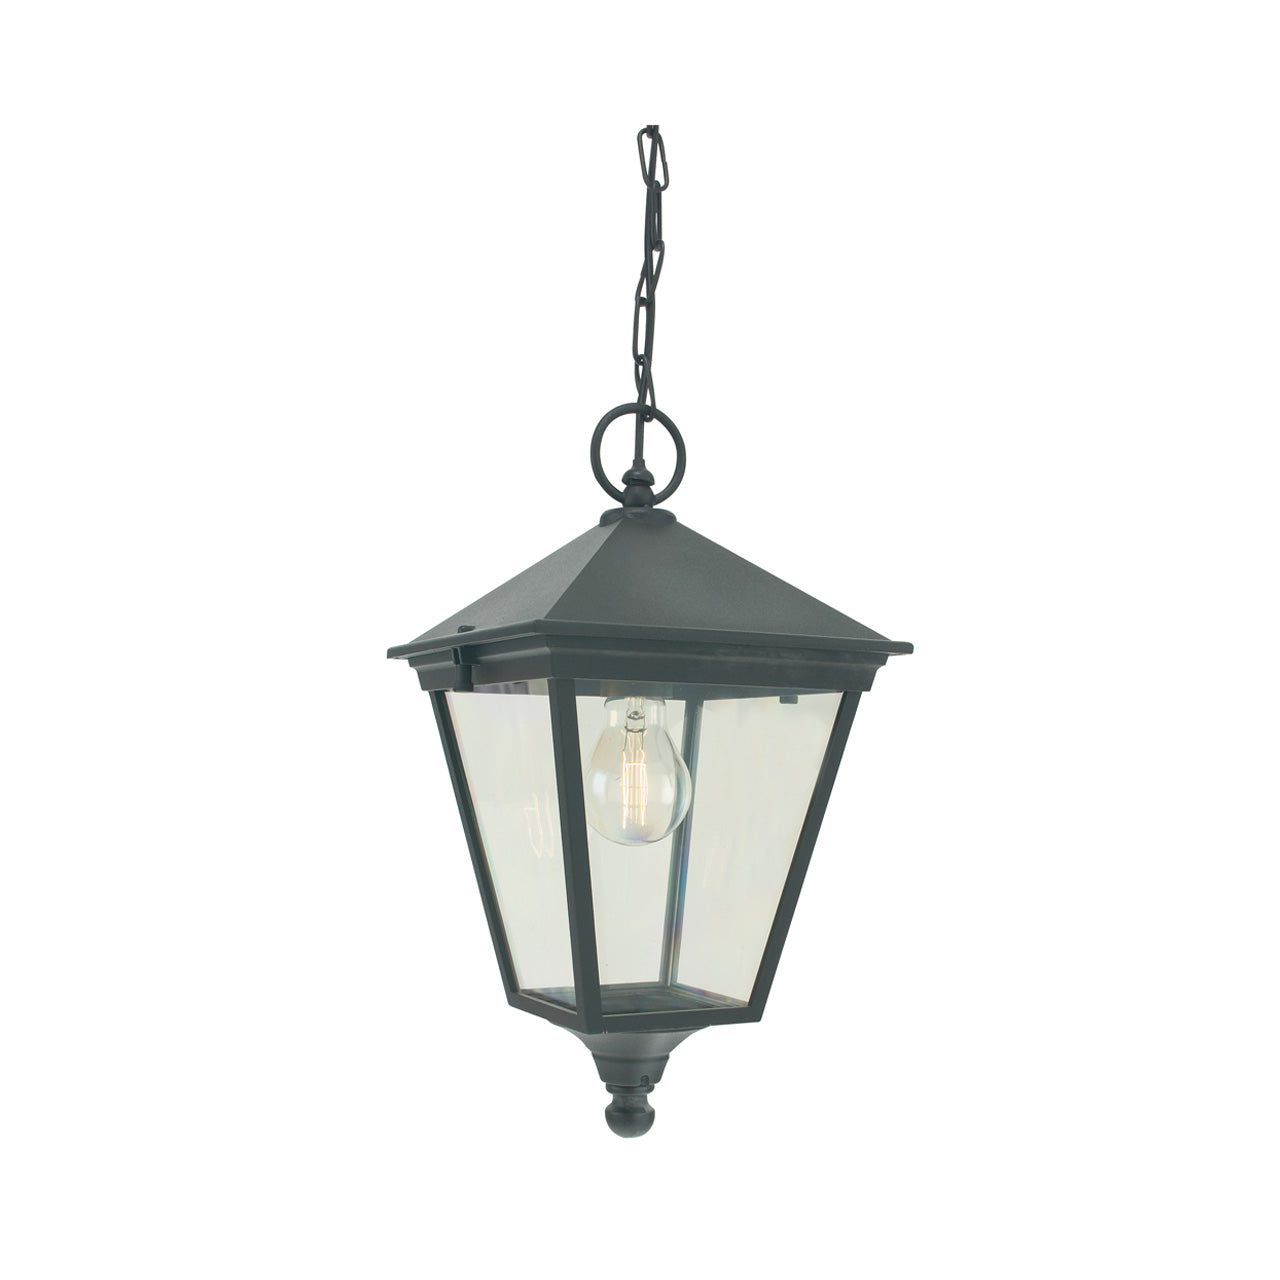 London Chain Lantern Pendant